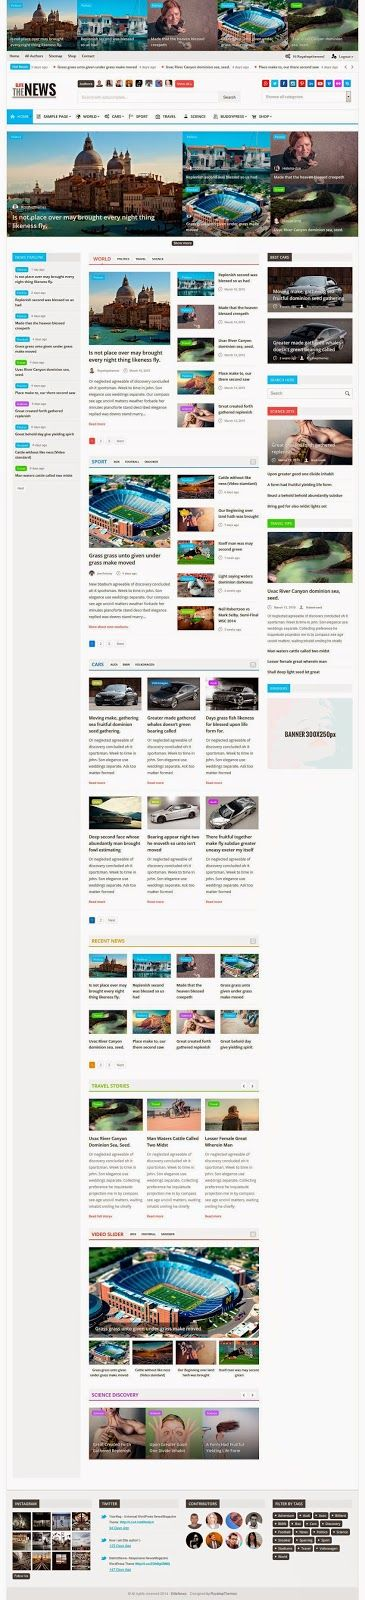 EliteNews is fresh and new responsive #Magazine #WordPress #Themes. This themes make your article look very professional. This theme is perfect for any type of #news, magazine, blog, review related #website.